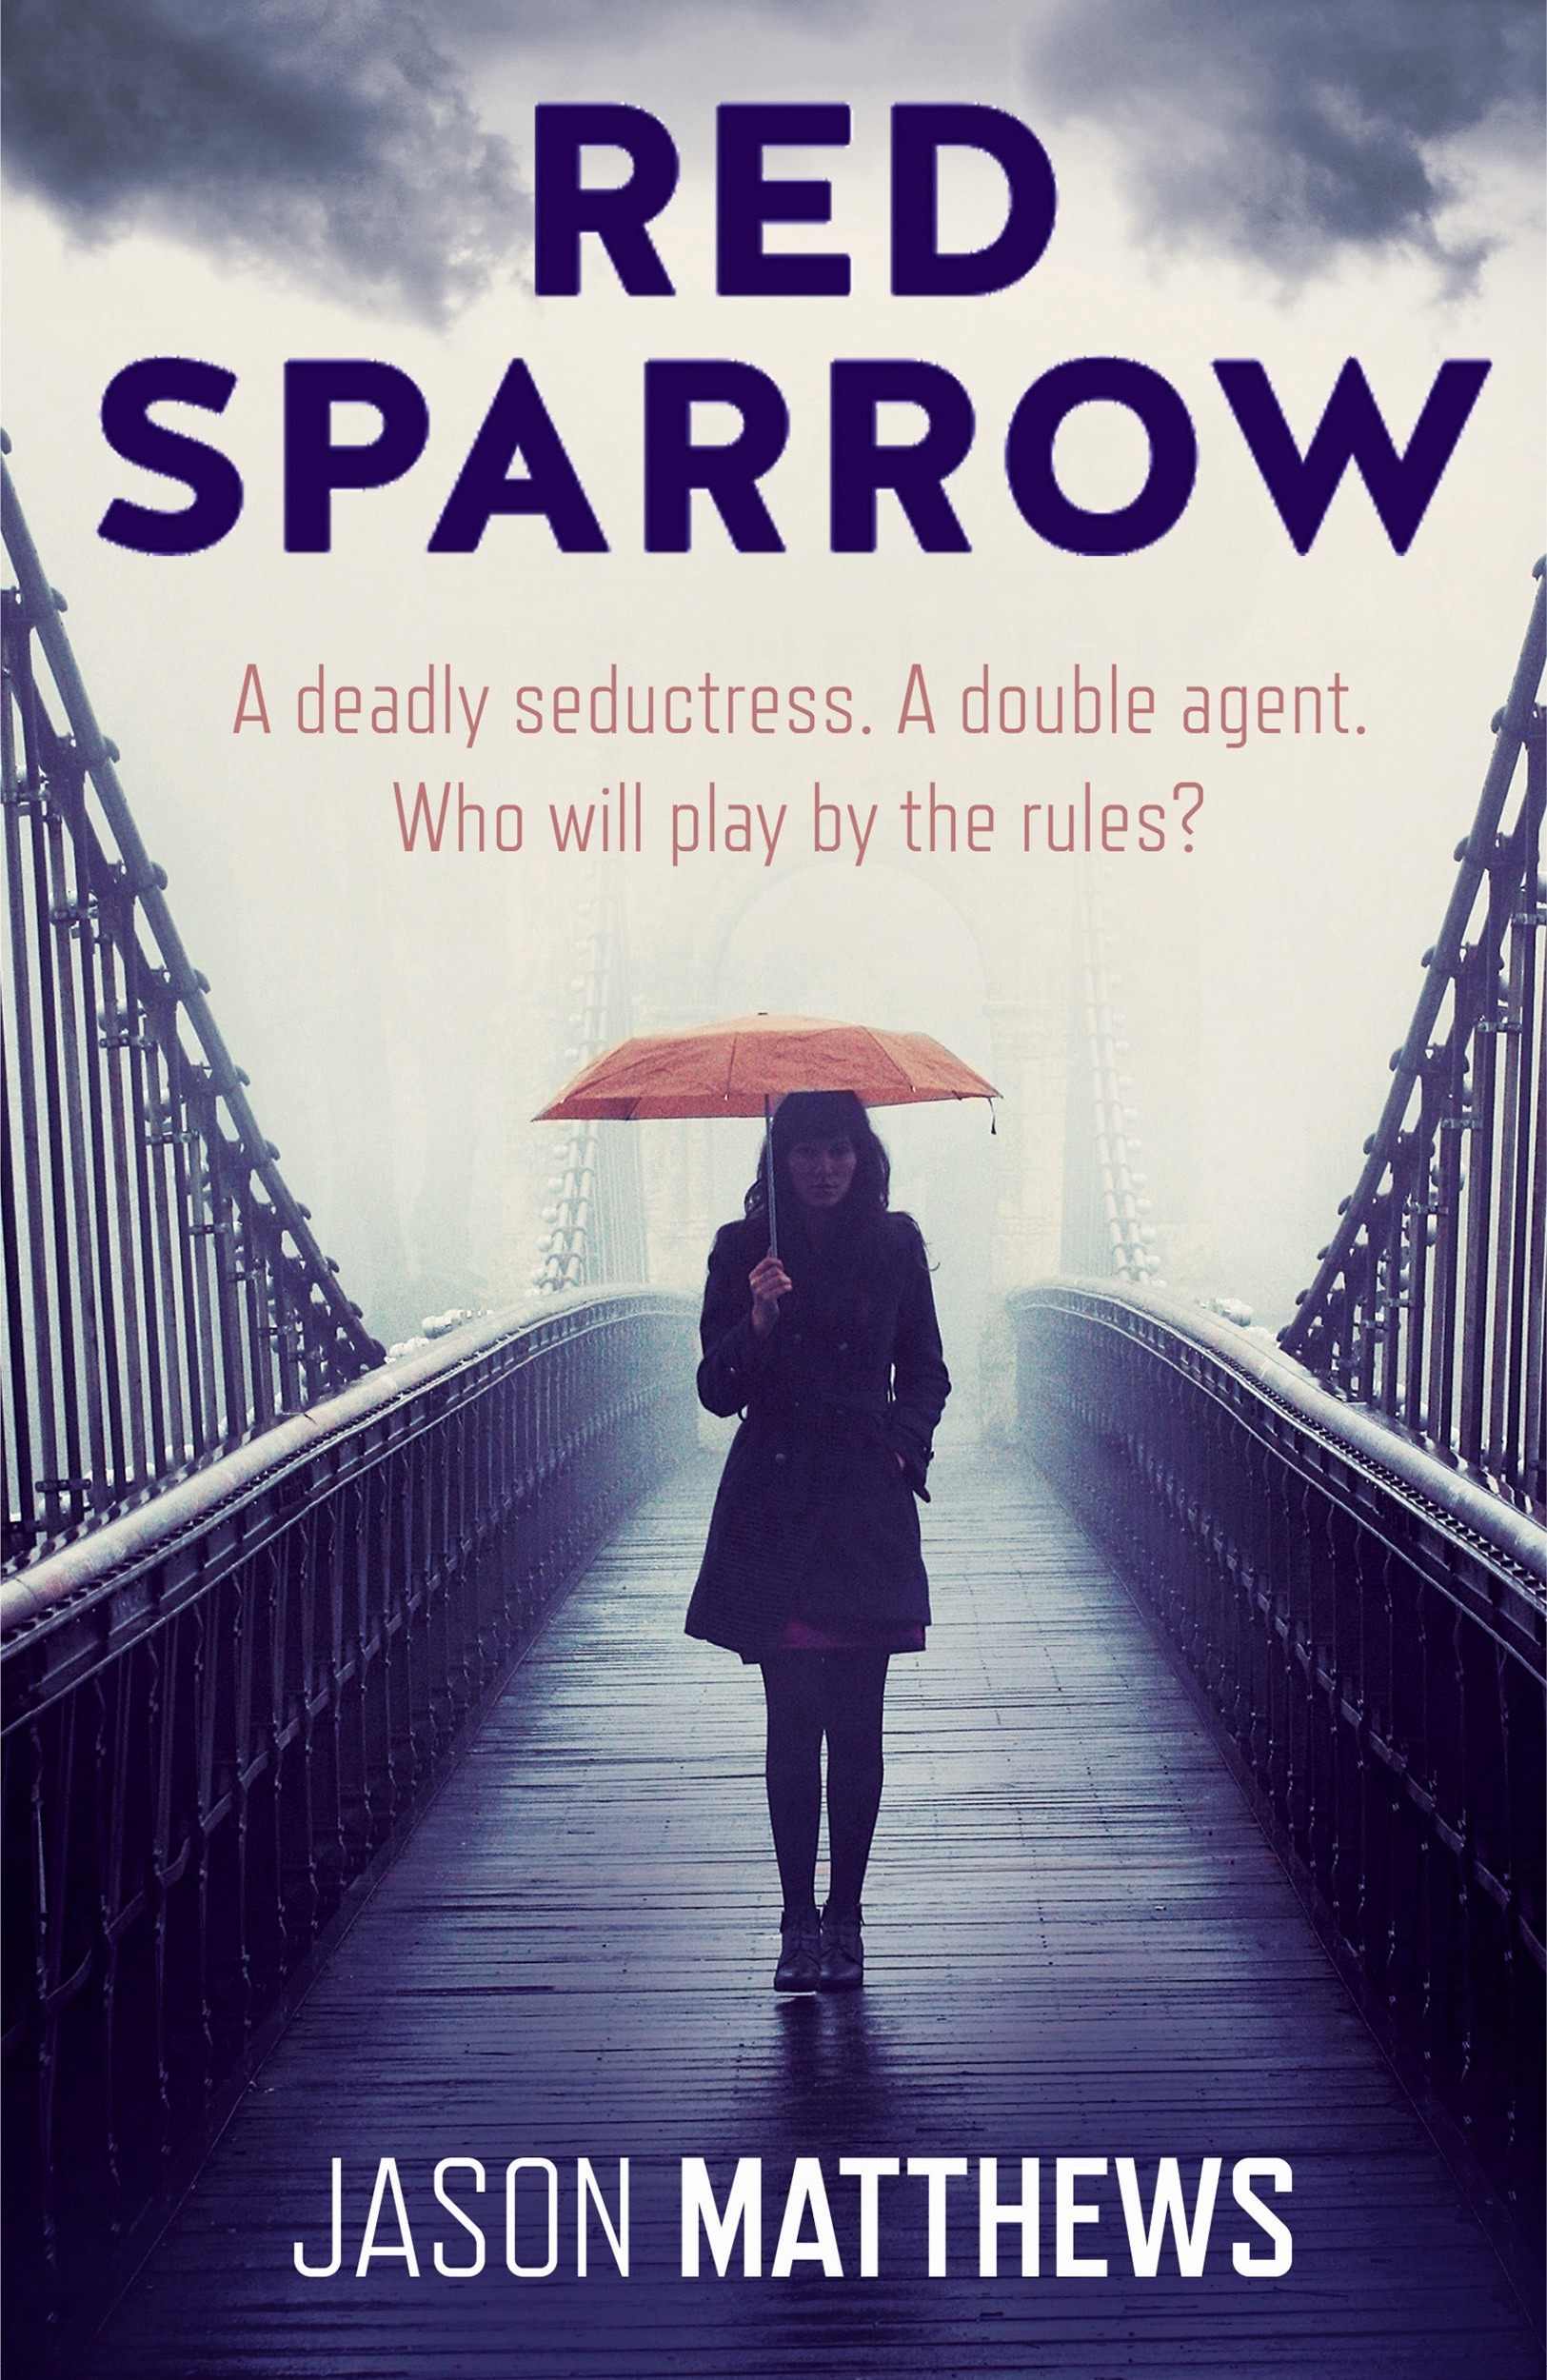 """Red Sparrow"""" Won't Surprise You, and that's the Problem   by Penseur  Rodinson"""